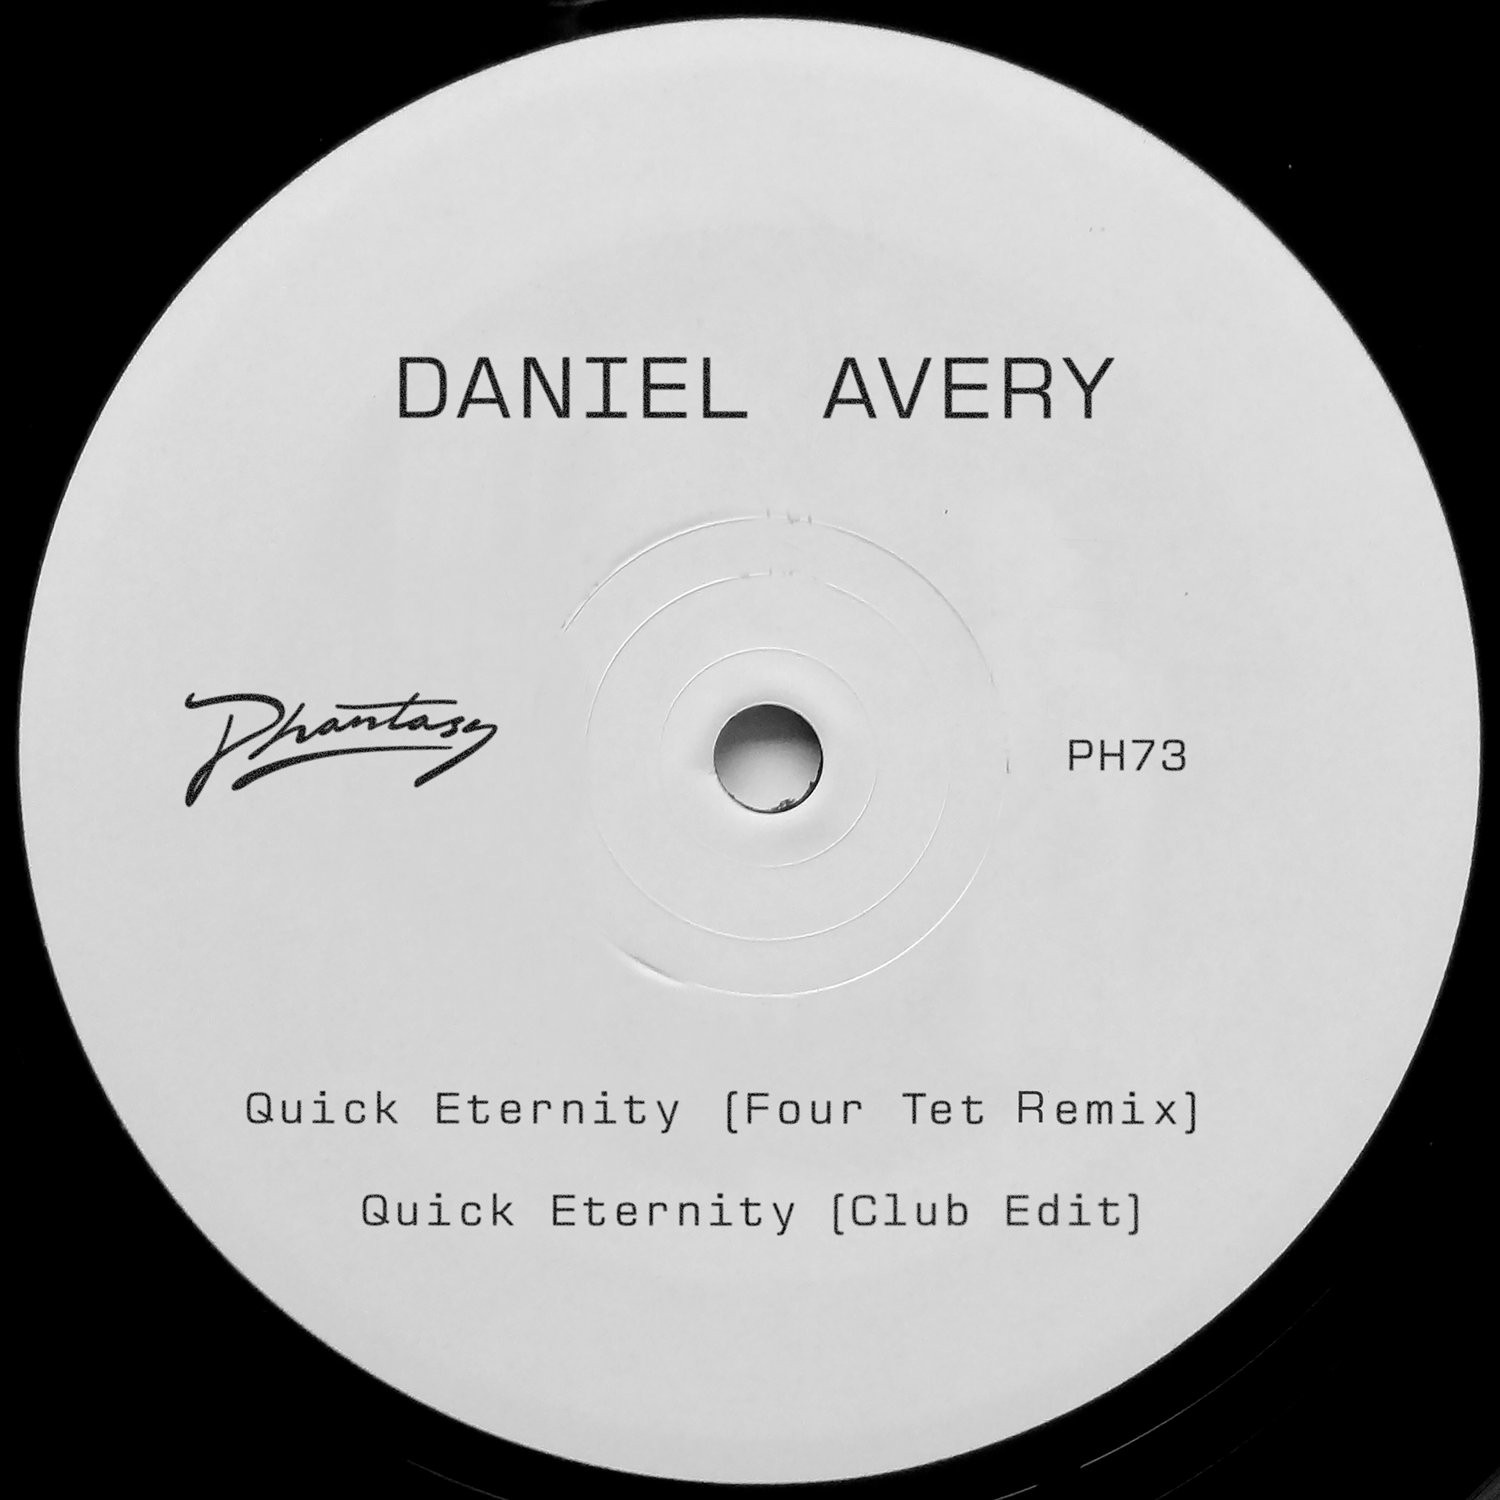 "Daniel Avery - Quick Eternity (Four Tet Remix) 12"" - Daniel Avery"